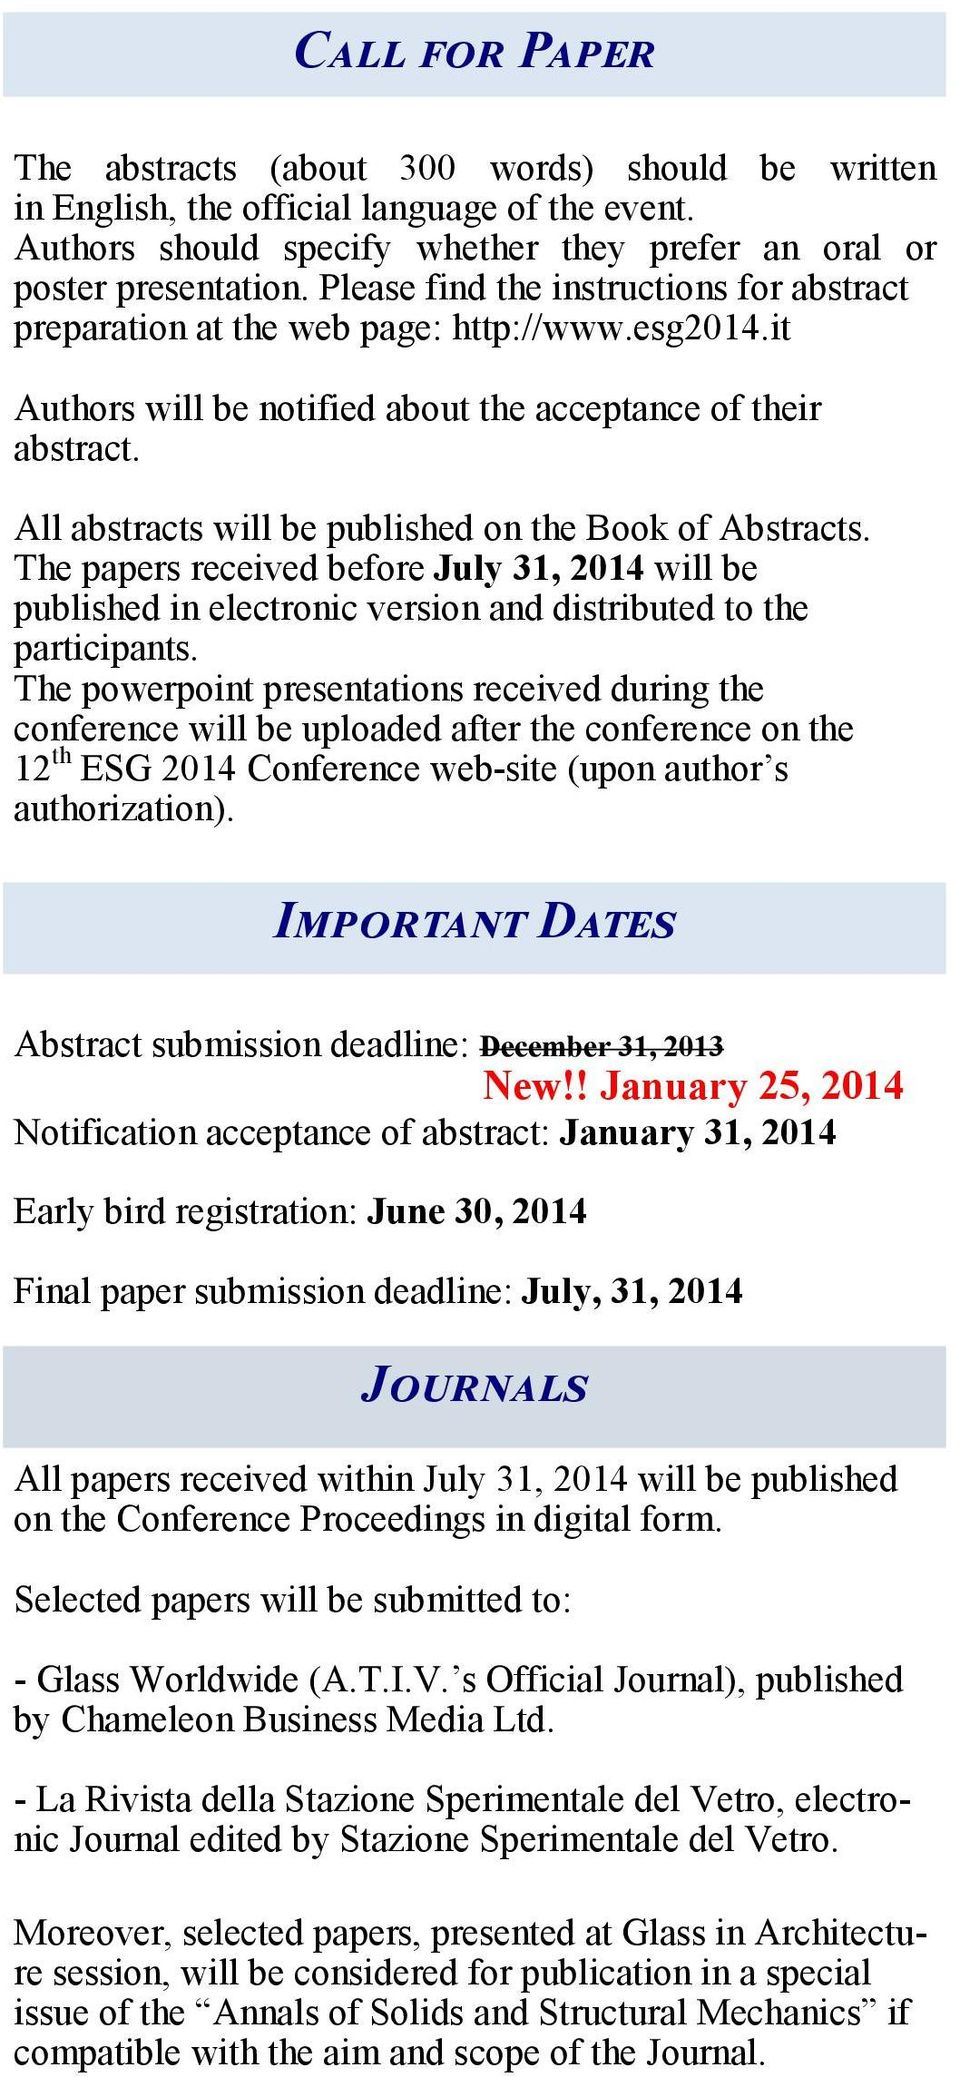 All abstracts will be published on the Book of Abstracts. The papers received before July 31, 2014 will be published in electronic version and distributed to the participants.